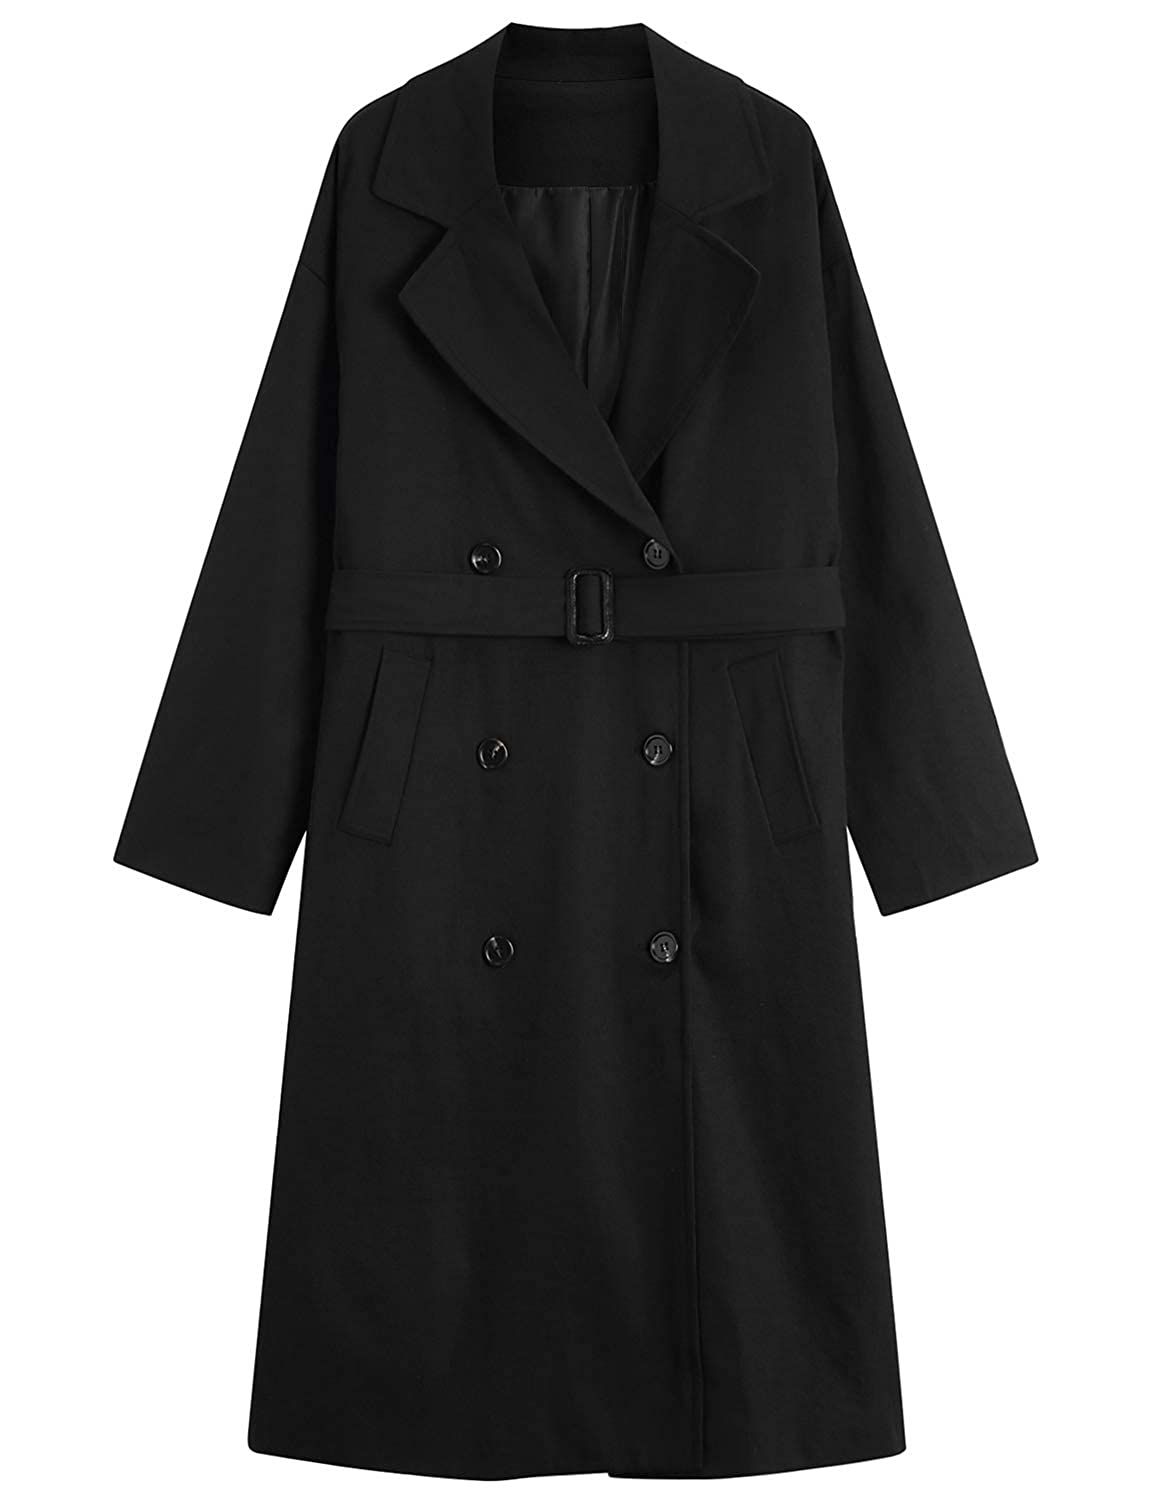 1930s Style Coats, Jackets | Art Deco Outerwear MOCRIS Trench Coats for Women Double-Breasted Mid-Length Overcoat Windbreaker with Belt Windbreaker $39.99 AT vintagedancer.com